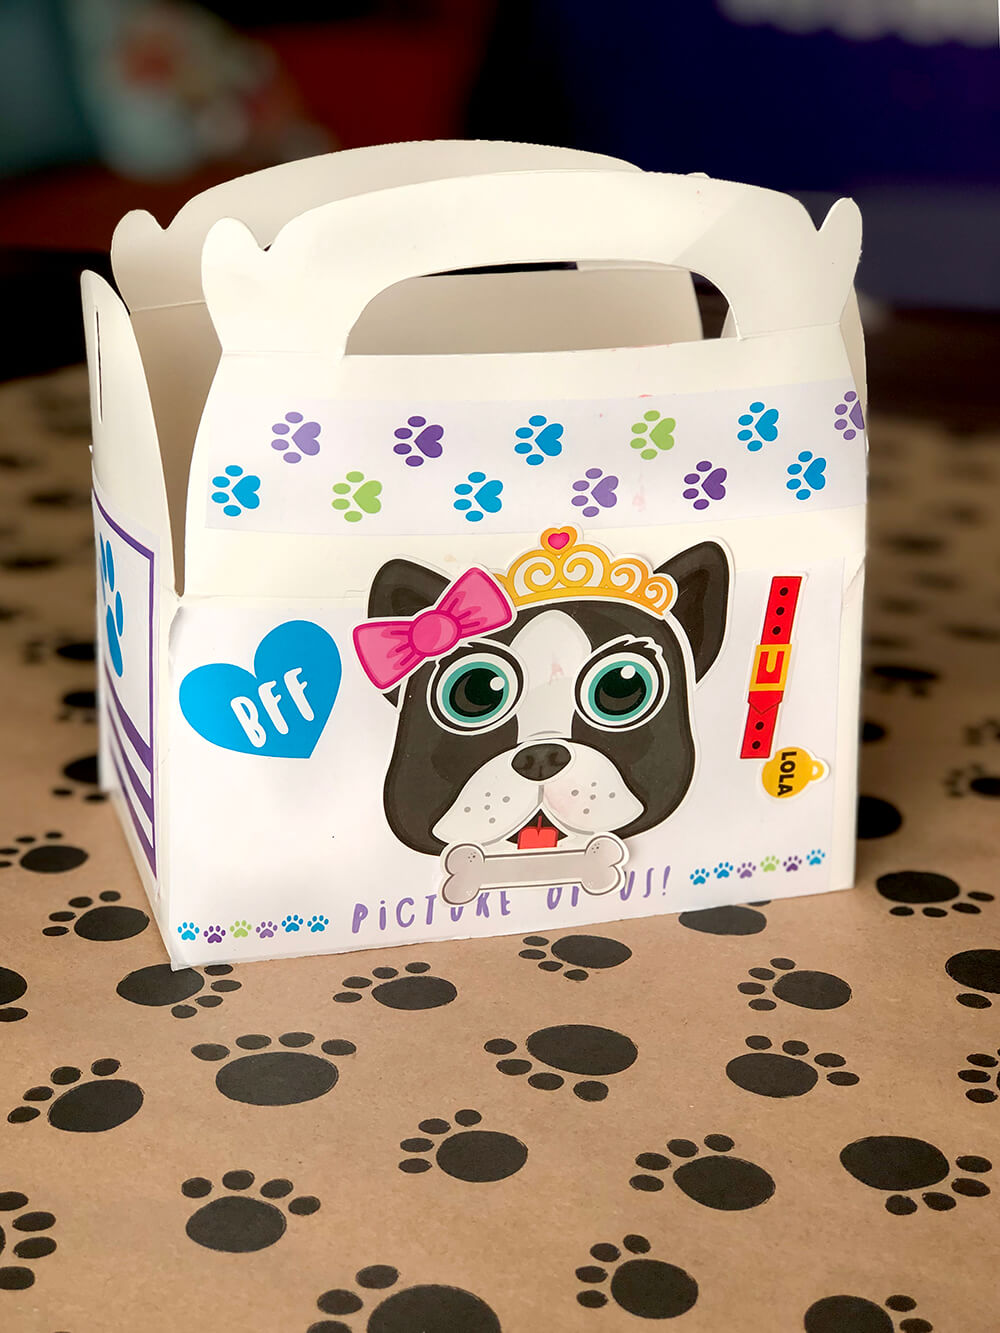 Decorated dog house - Puppy party activity ideas for kids